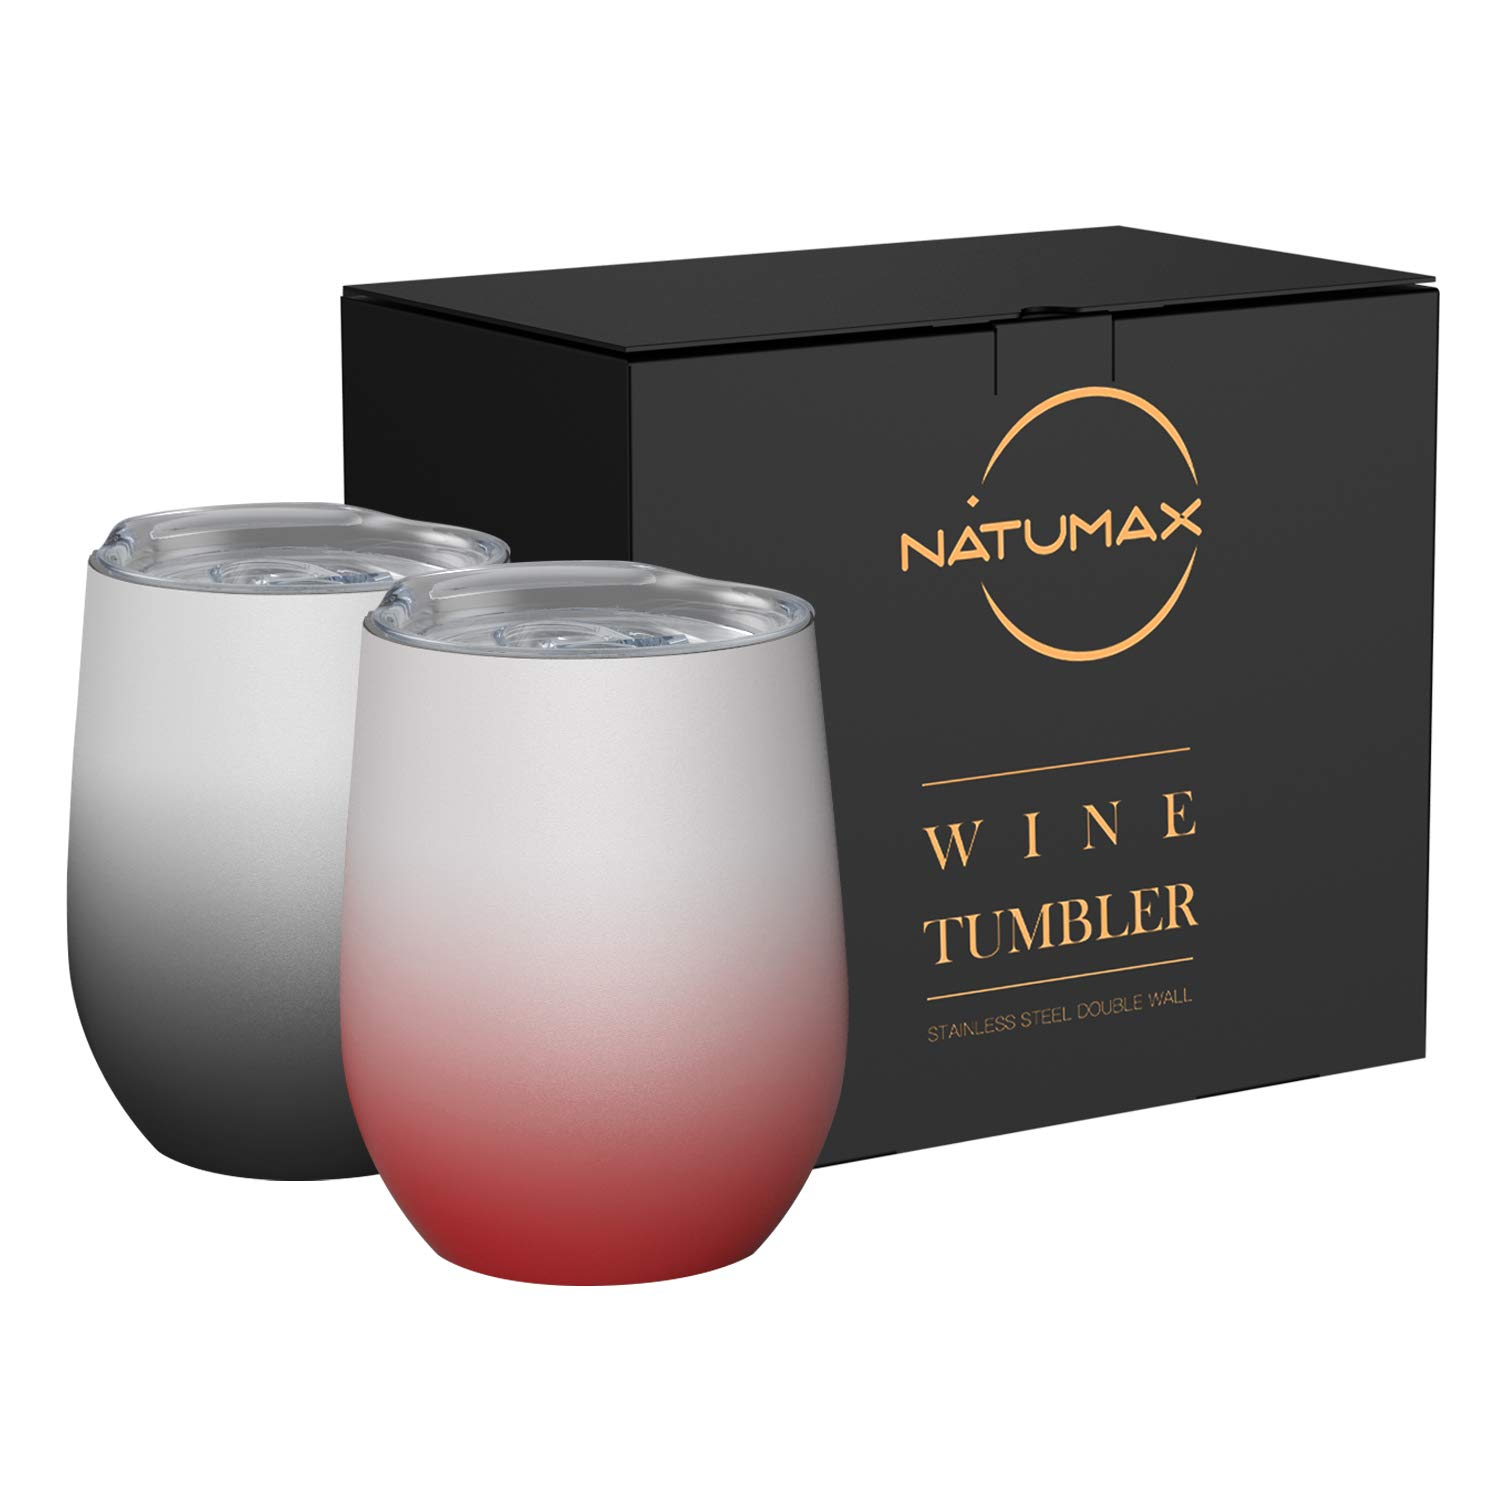 Wine Tumblers with Lid, 12 oz Stainless Steel Stemless Wine Glasses Double Wall Vacuum Travel Insulated Cup for Coffee, Drinks, Champagne, Beverage, Set of 2